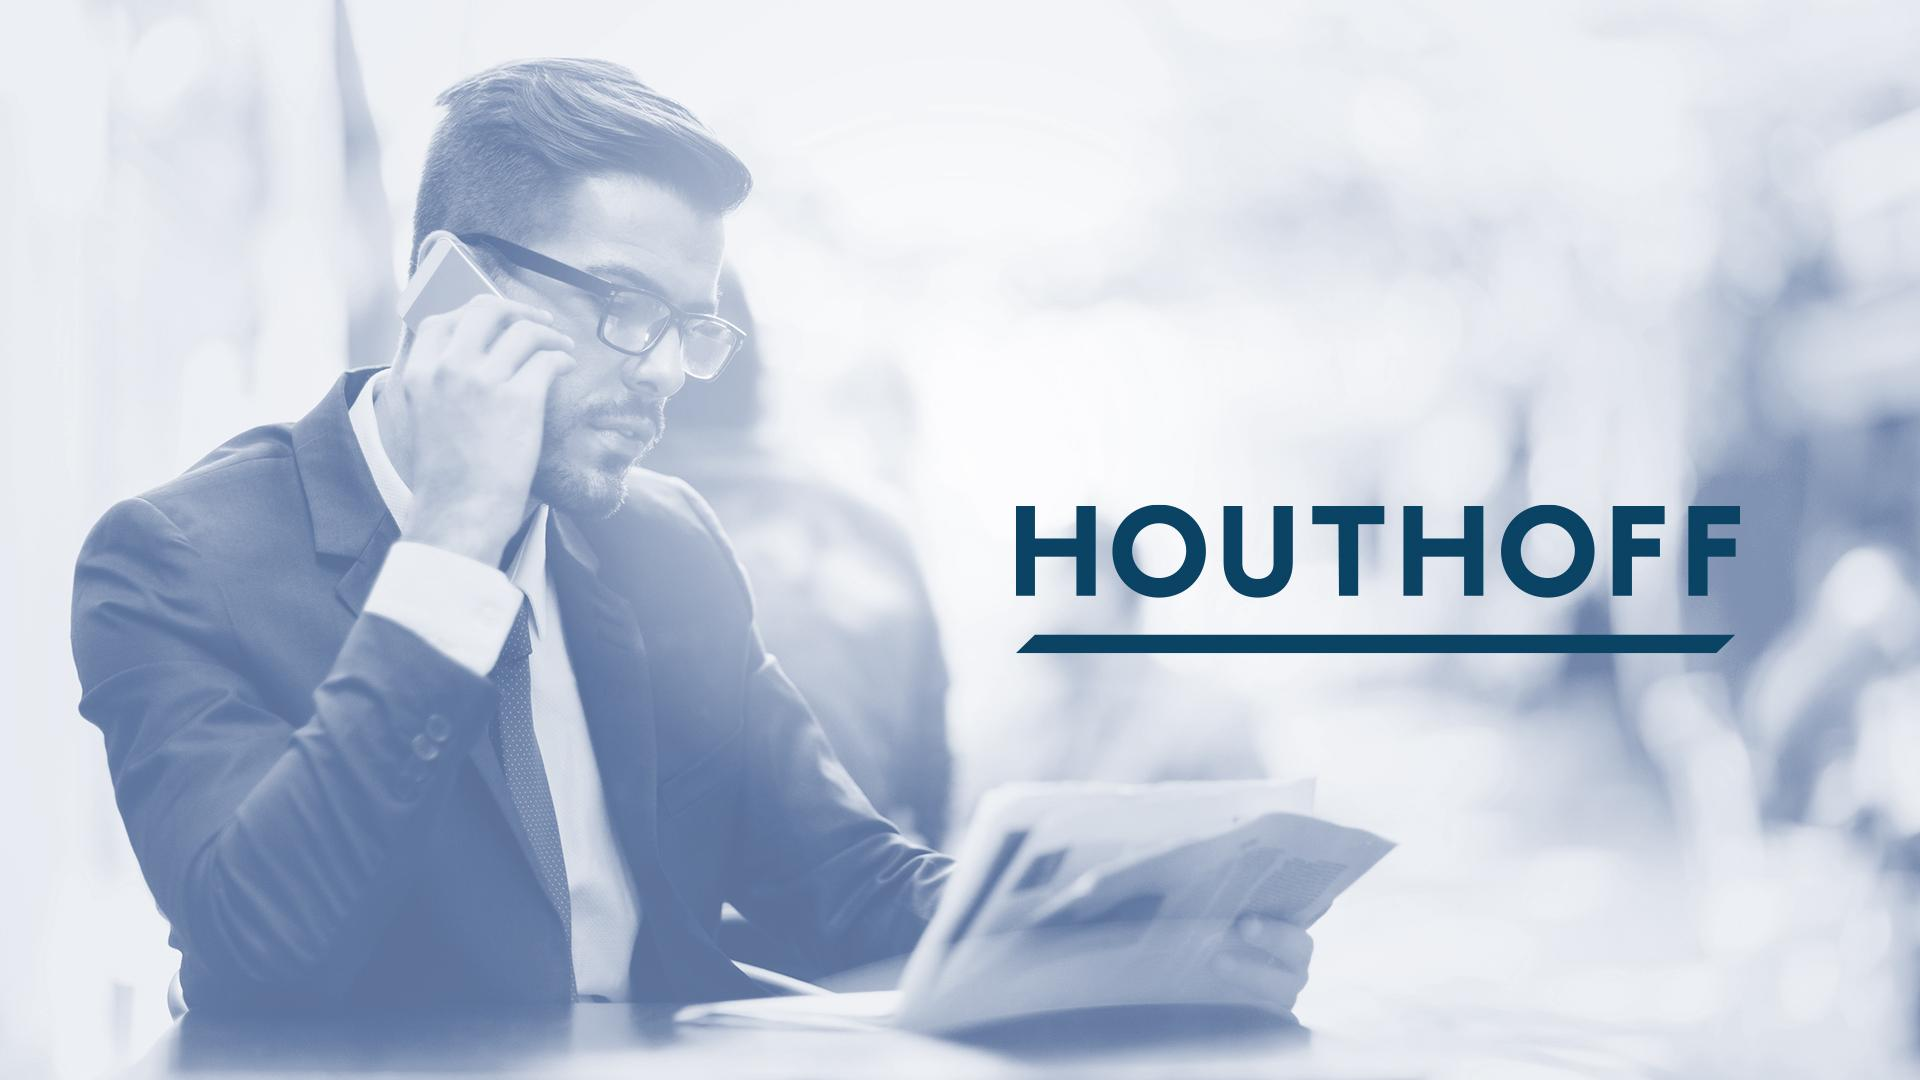 Houthoff is the latest leading European law firm to switch to DocsCorp for document productivity solutions